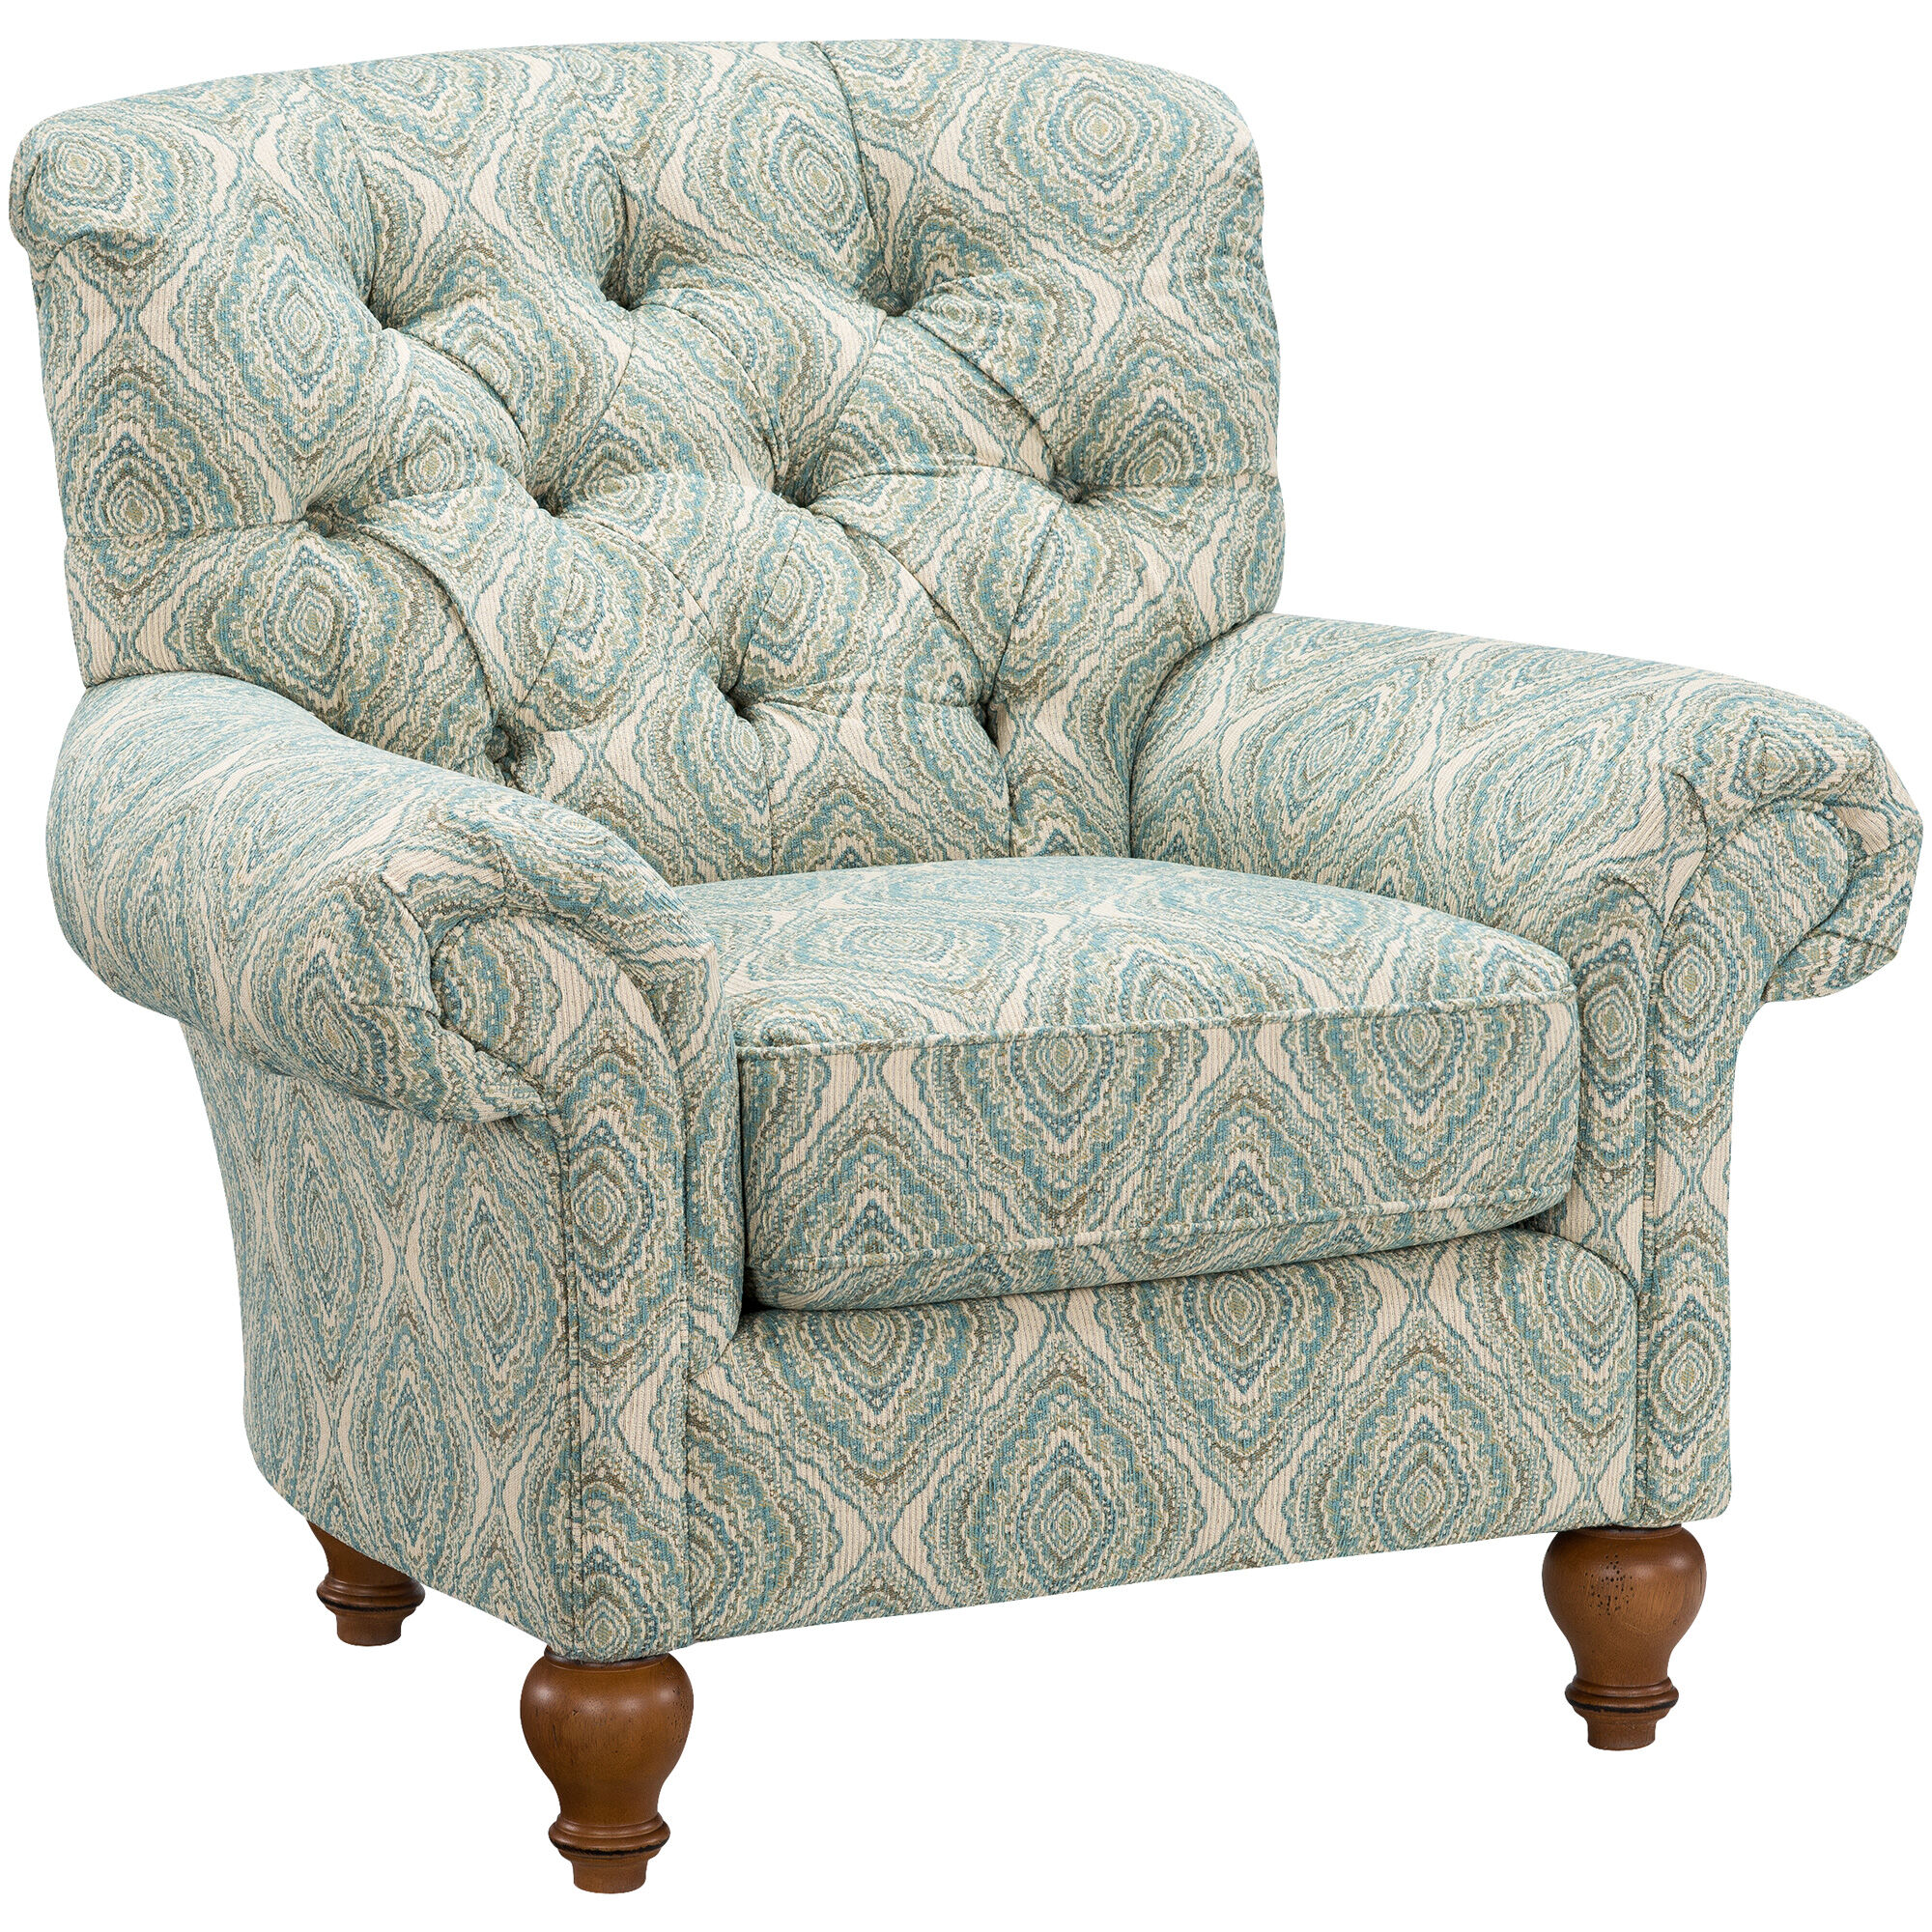 Incroyable Tranquility Blue Tufted Accent Chair; Tranquility Blue Tufted Accent Chair  ...